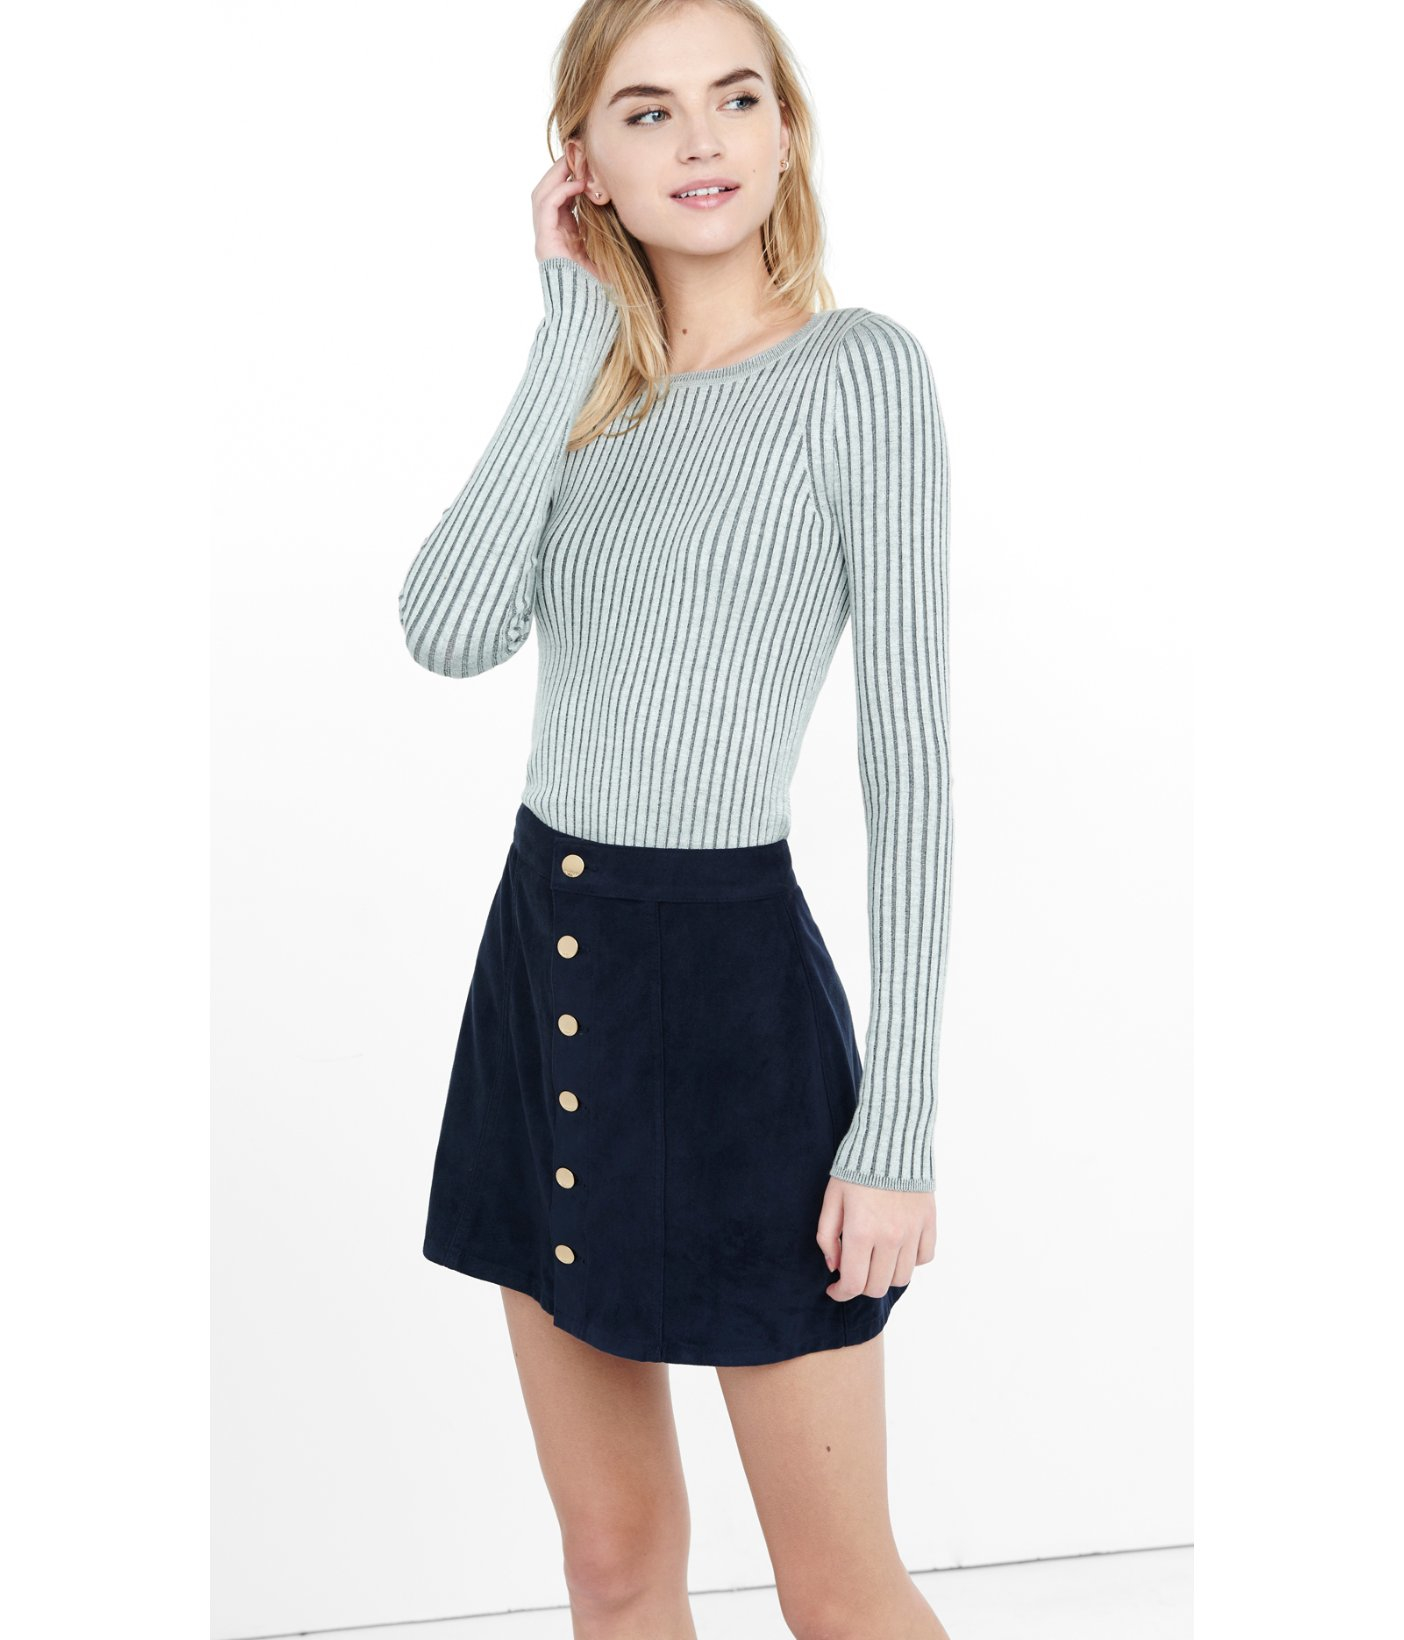 Express Plaited Crew Neck Wide Ribbed Sweater in Gray   Lyst